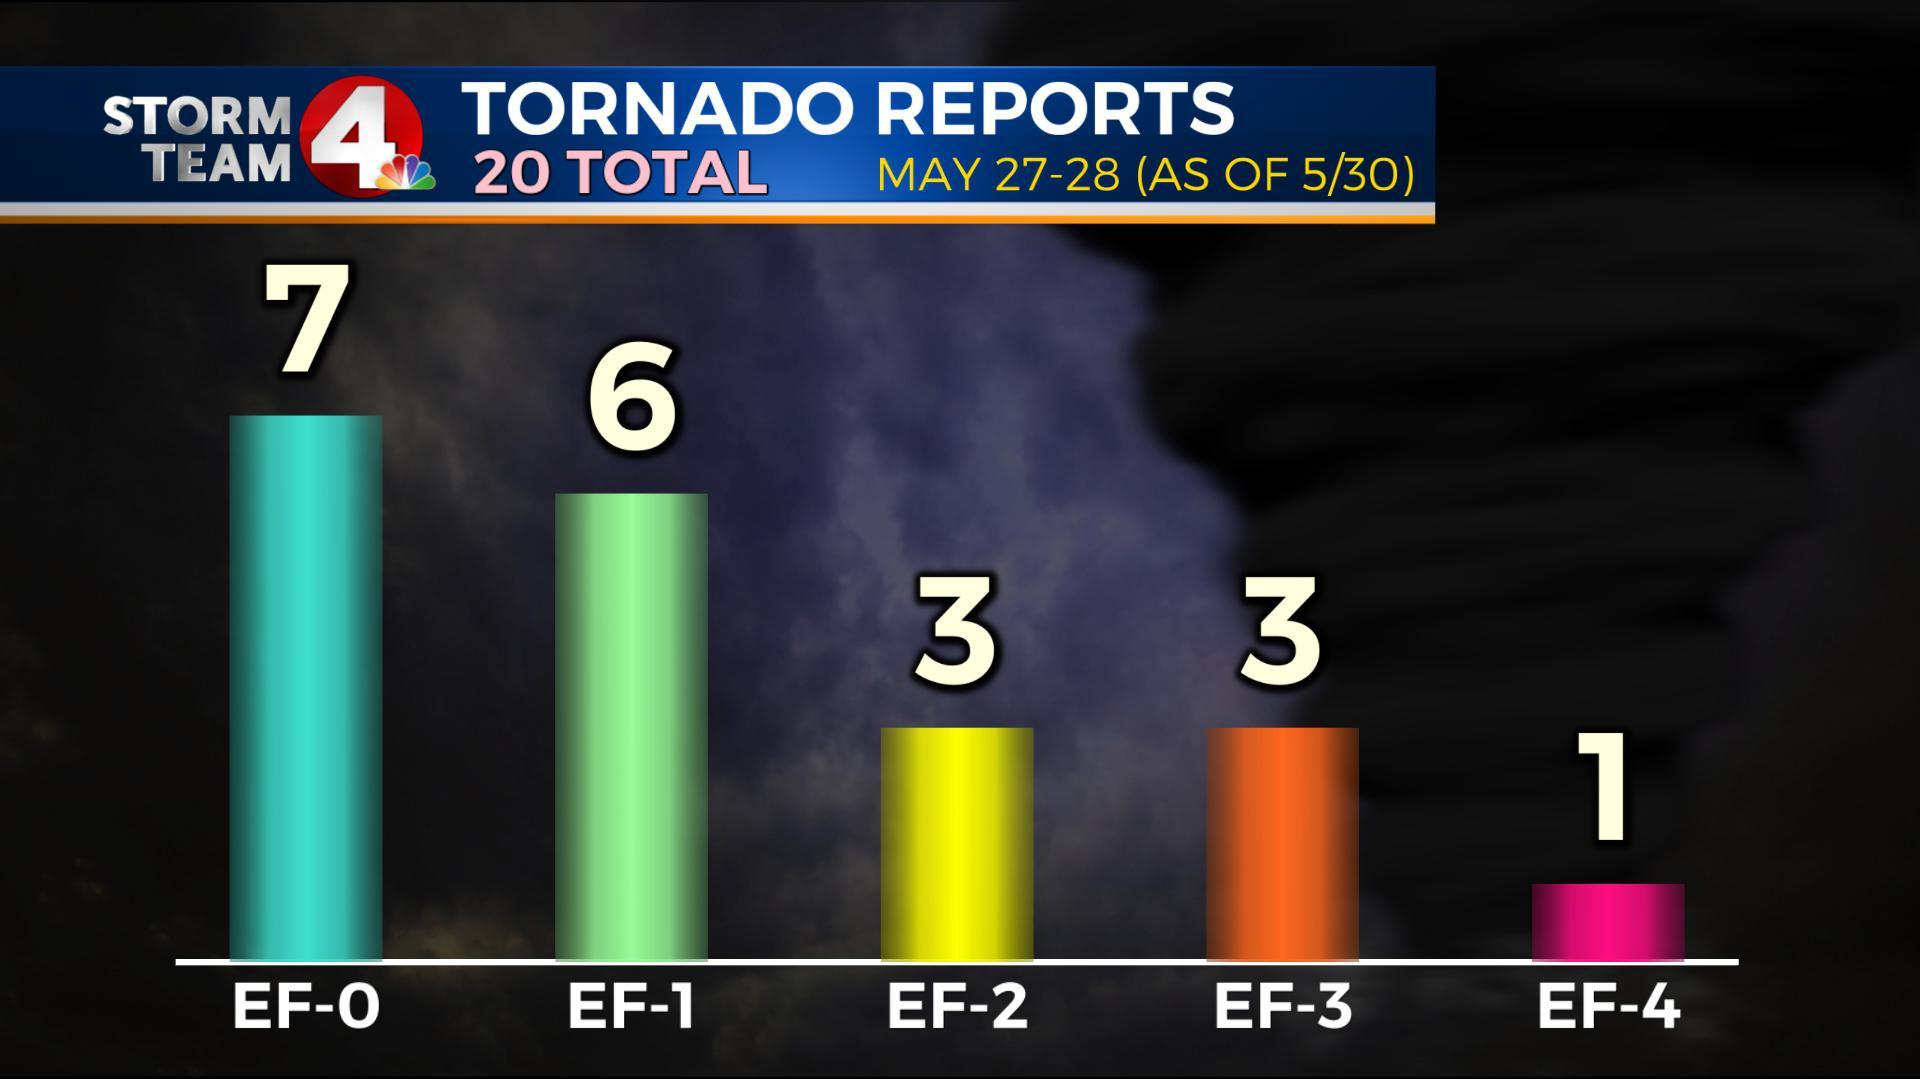 20 tornadoes confirmed Monday night - Tuesday morning